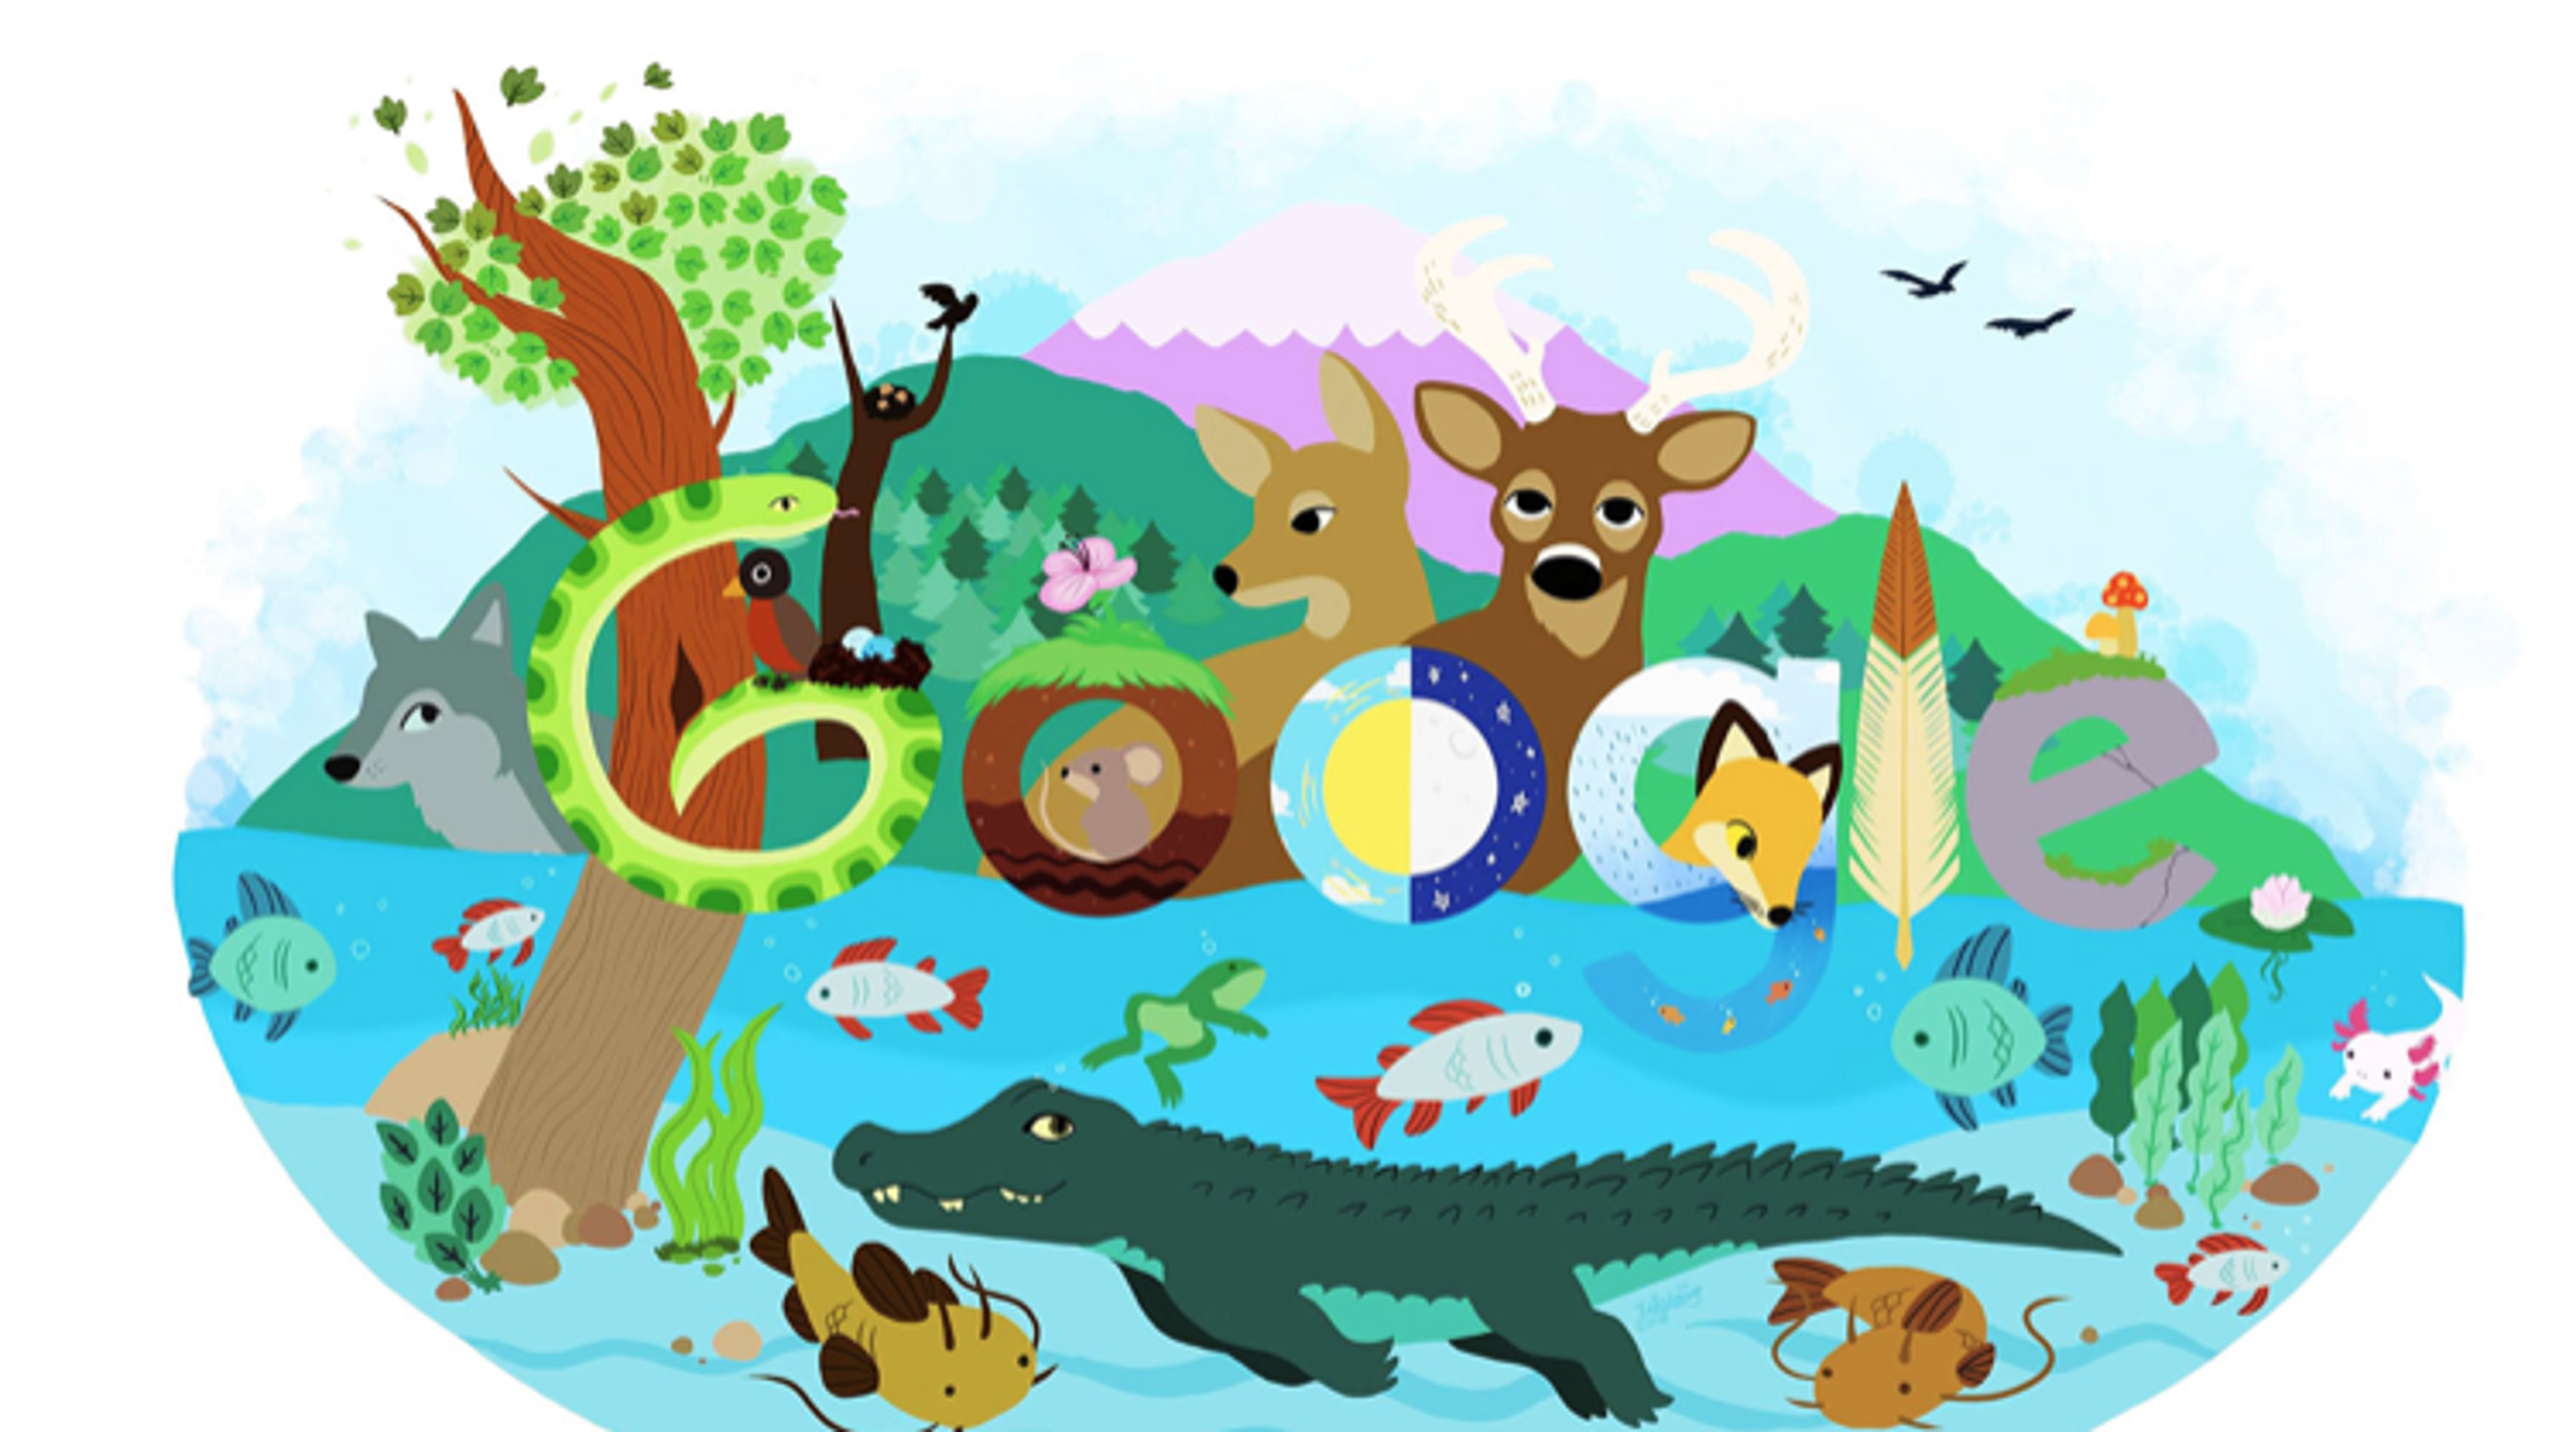 fb4a62ba97ed5 North Oldham freshman is state winner of 2018 Doodle 4 Google contest